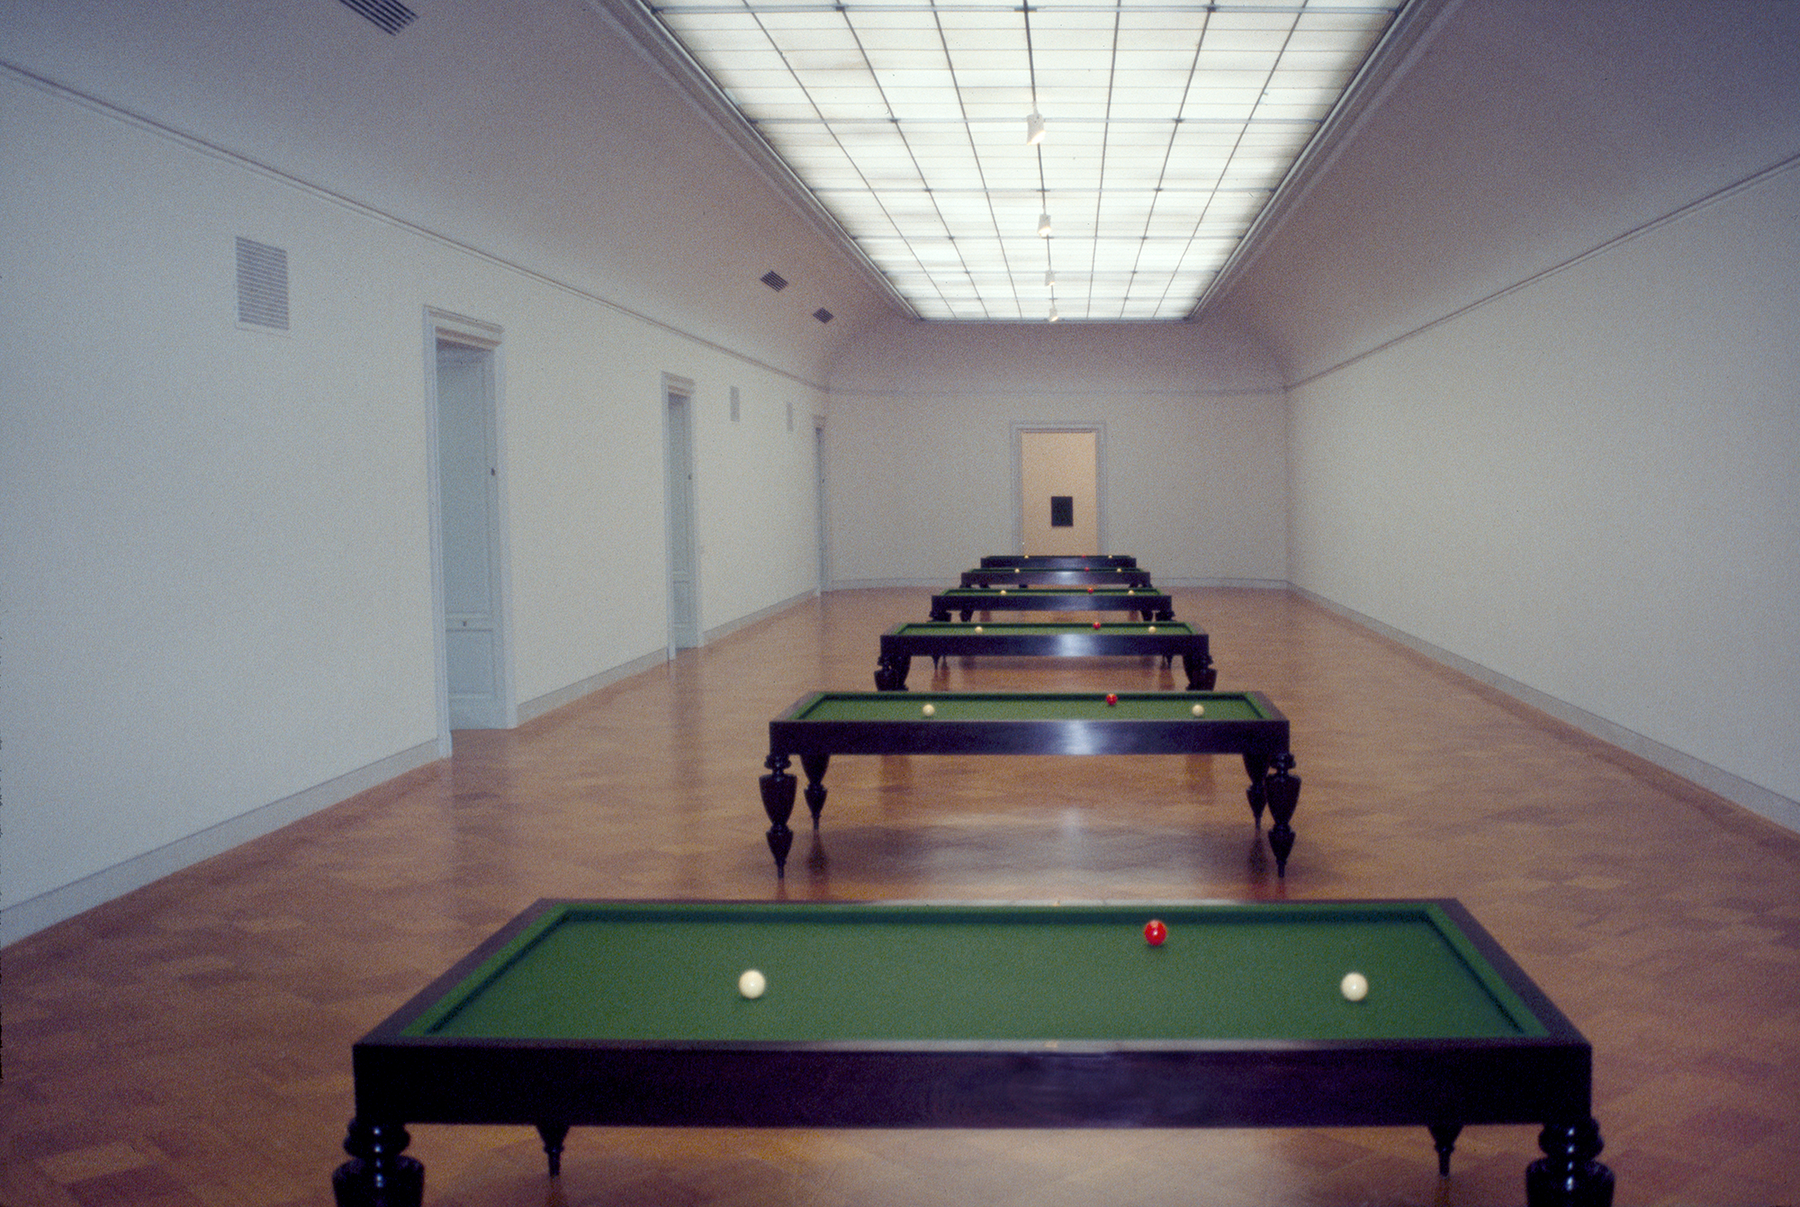 five billiards tables standing in a row with two white balls and one red ball placed in the same position on each